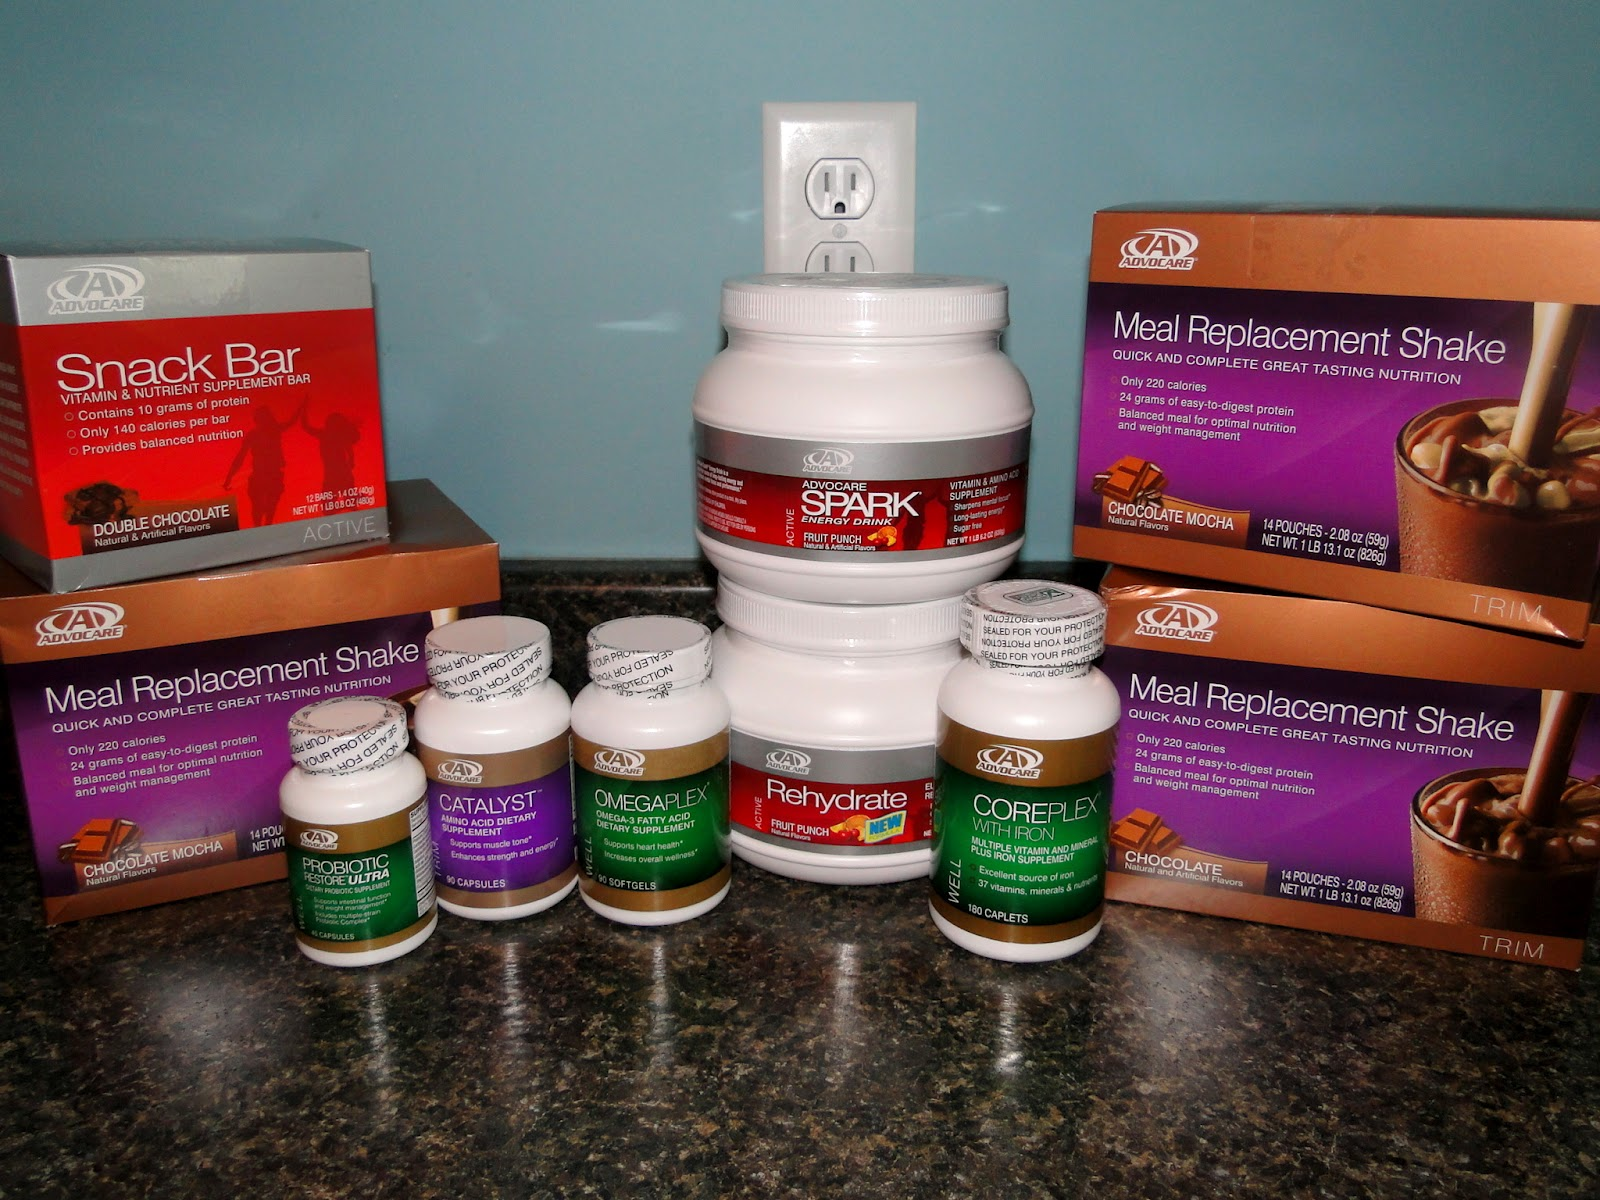 Advocare products cost - I Will Be The First To Say That This Stuff Is Not Cheap However It Has Helped Me Cut Out Some Other Costs The Coreplex With Iron Replaces My Prenatal